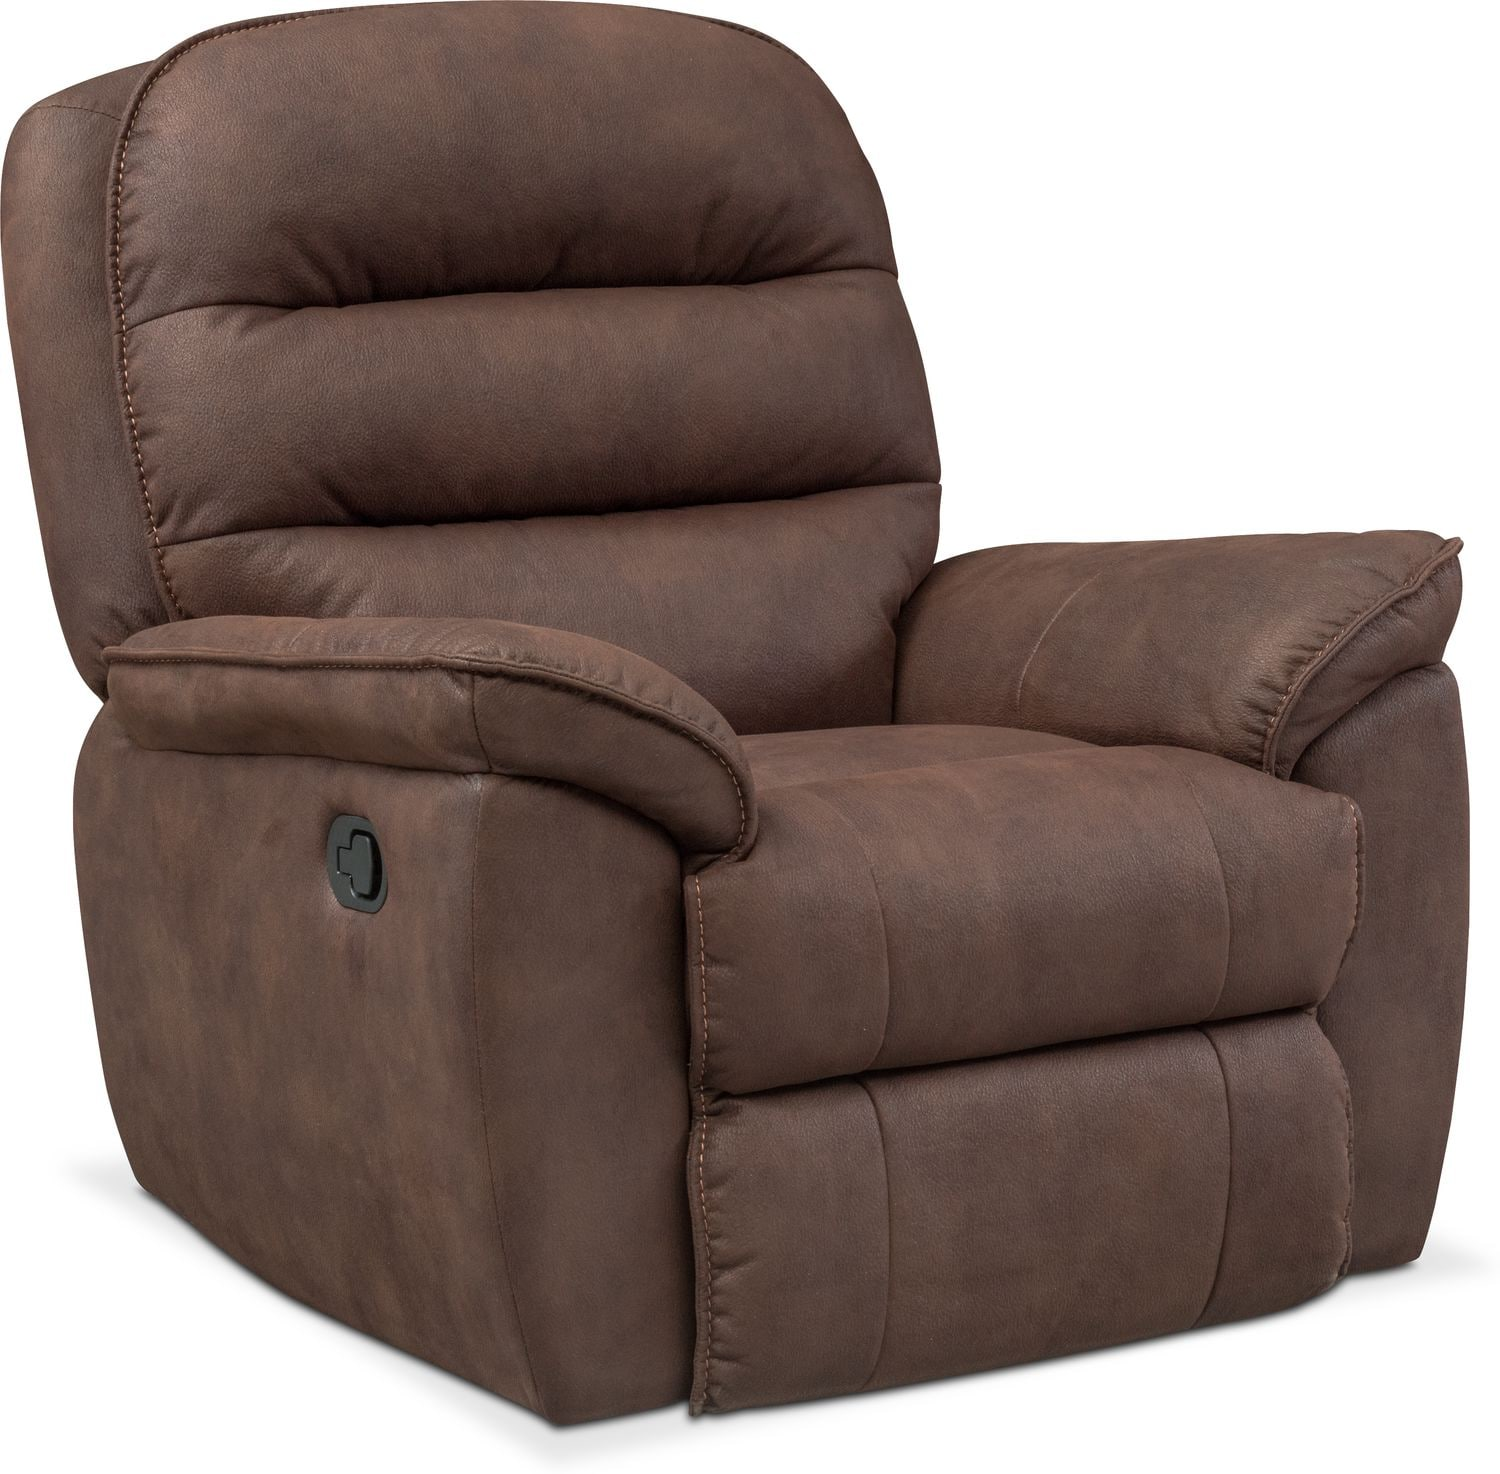 Living Room Furniture - Regis Glider Recliner